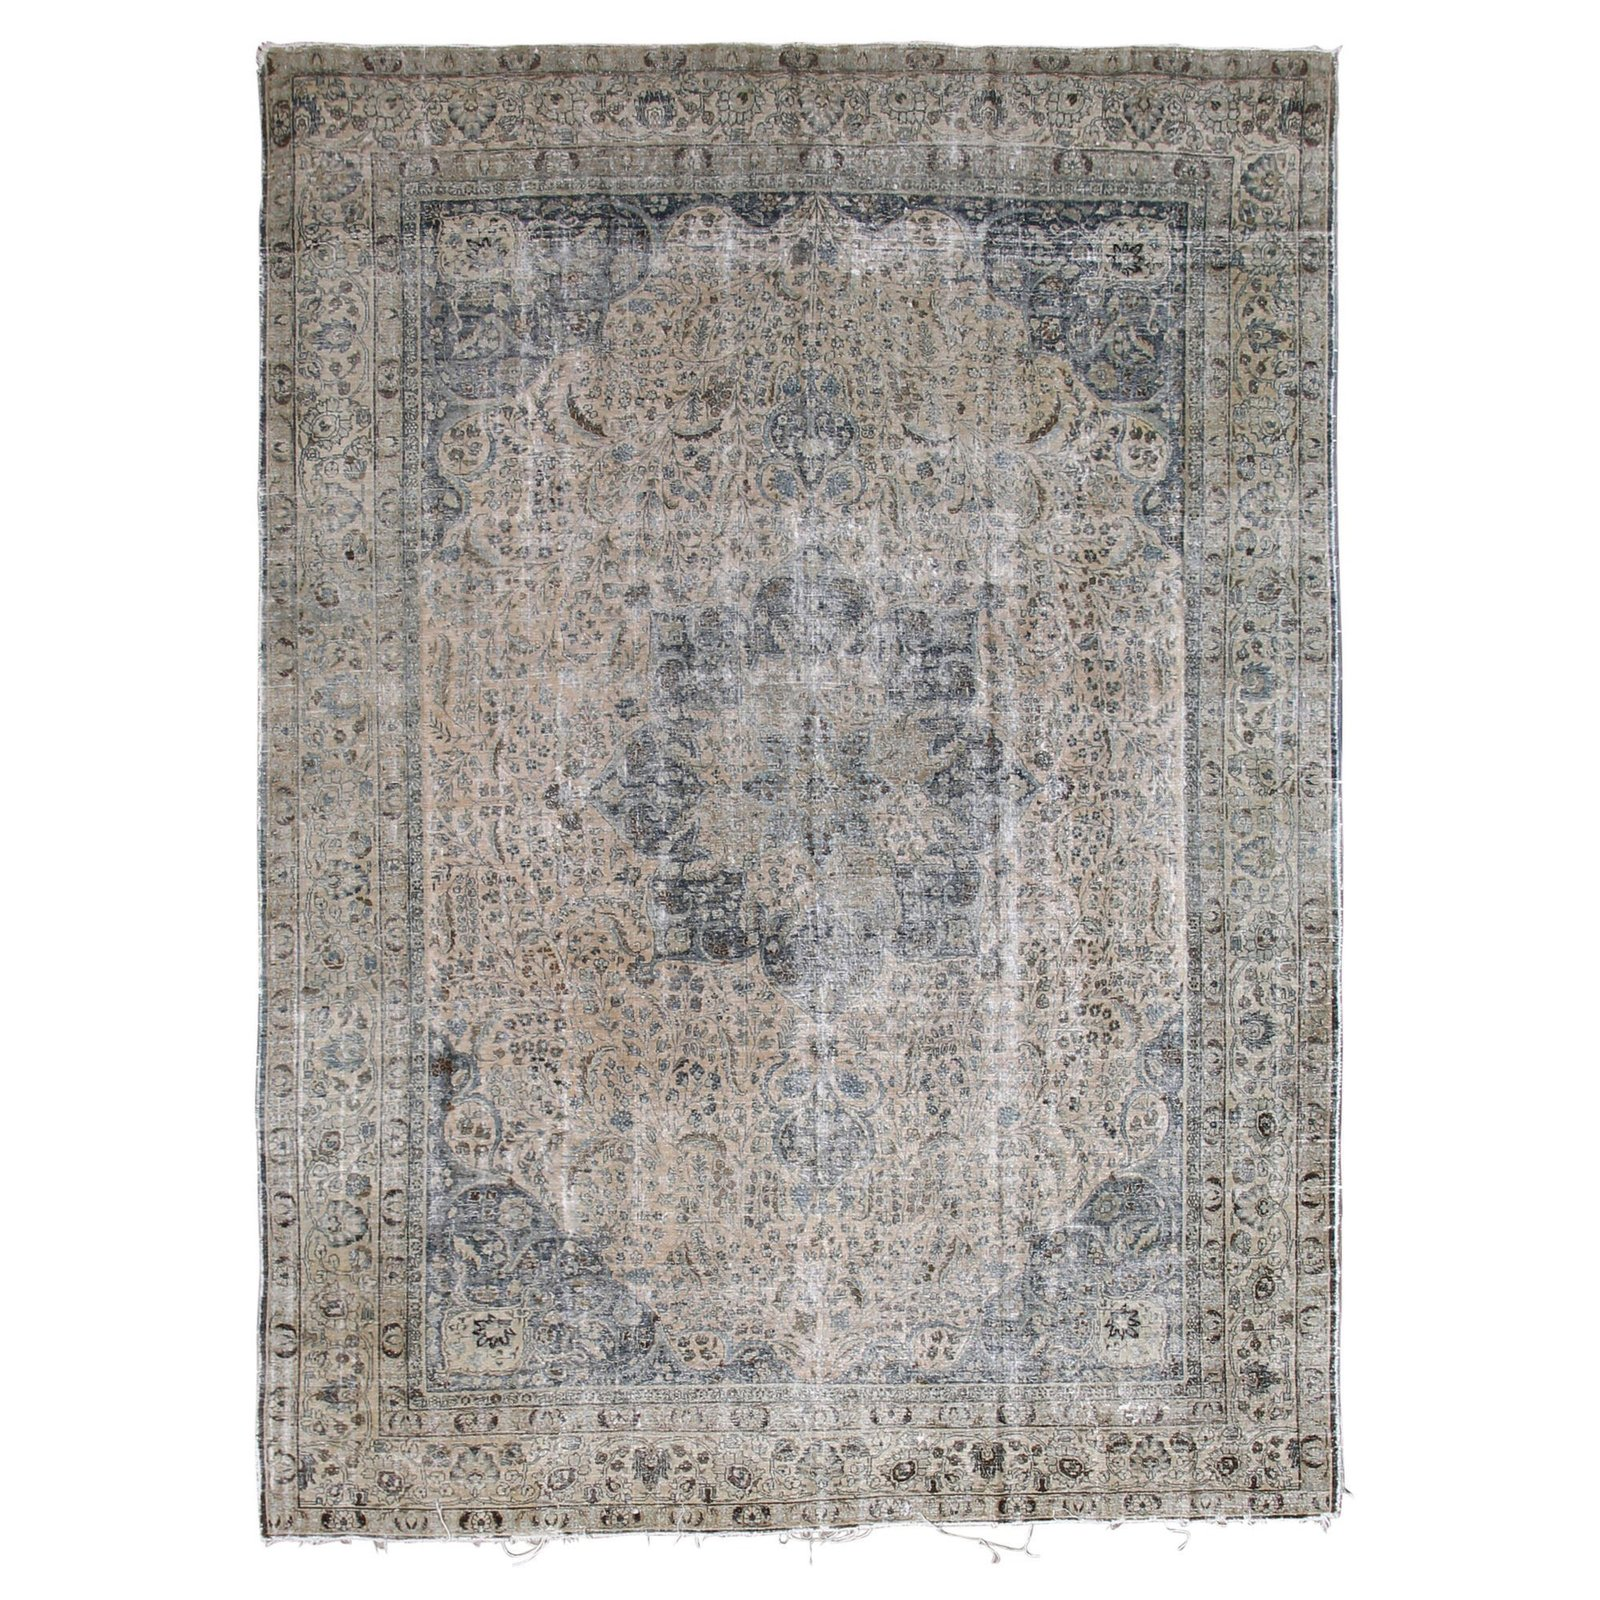 Lawrence of La Brea Antique Tabriz Rug ($8450)  Photo 3 of 26 in Inside Our Striking MyDomaine Office in Los Angeles